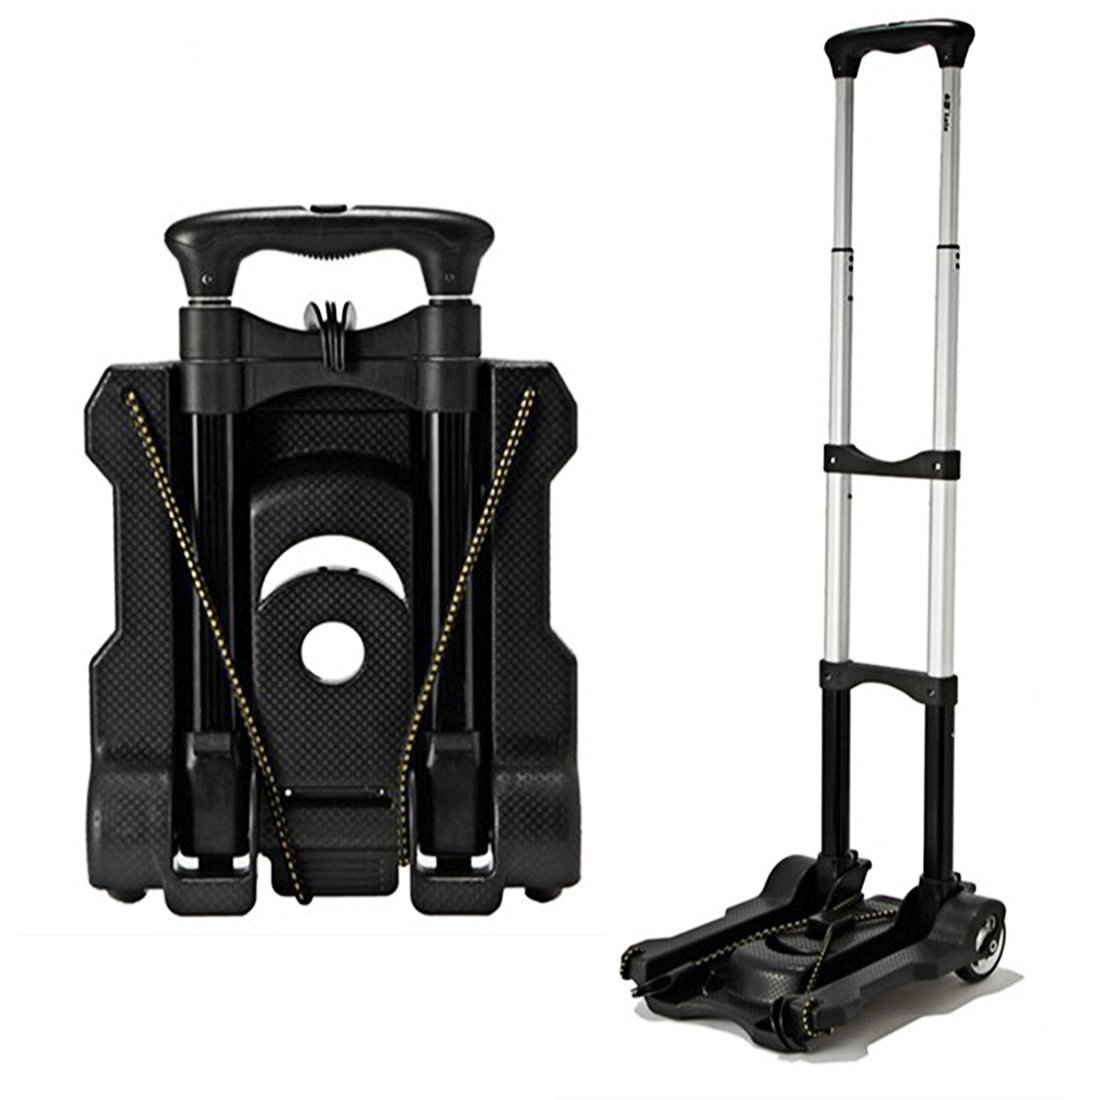 DANSPEED Portable Foldable Outdoor Travel Shopping Cart Supermarket Luggage Trolley